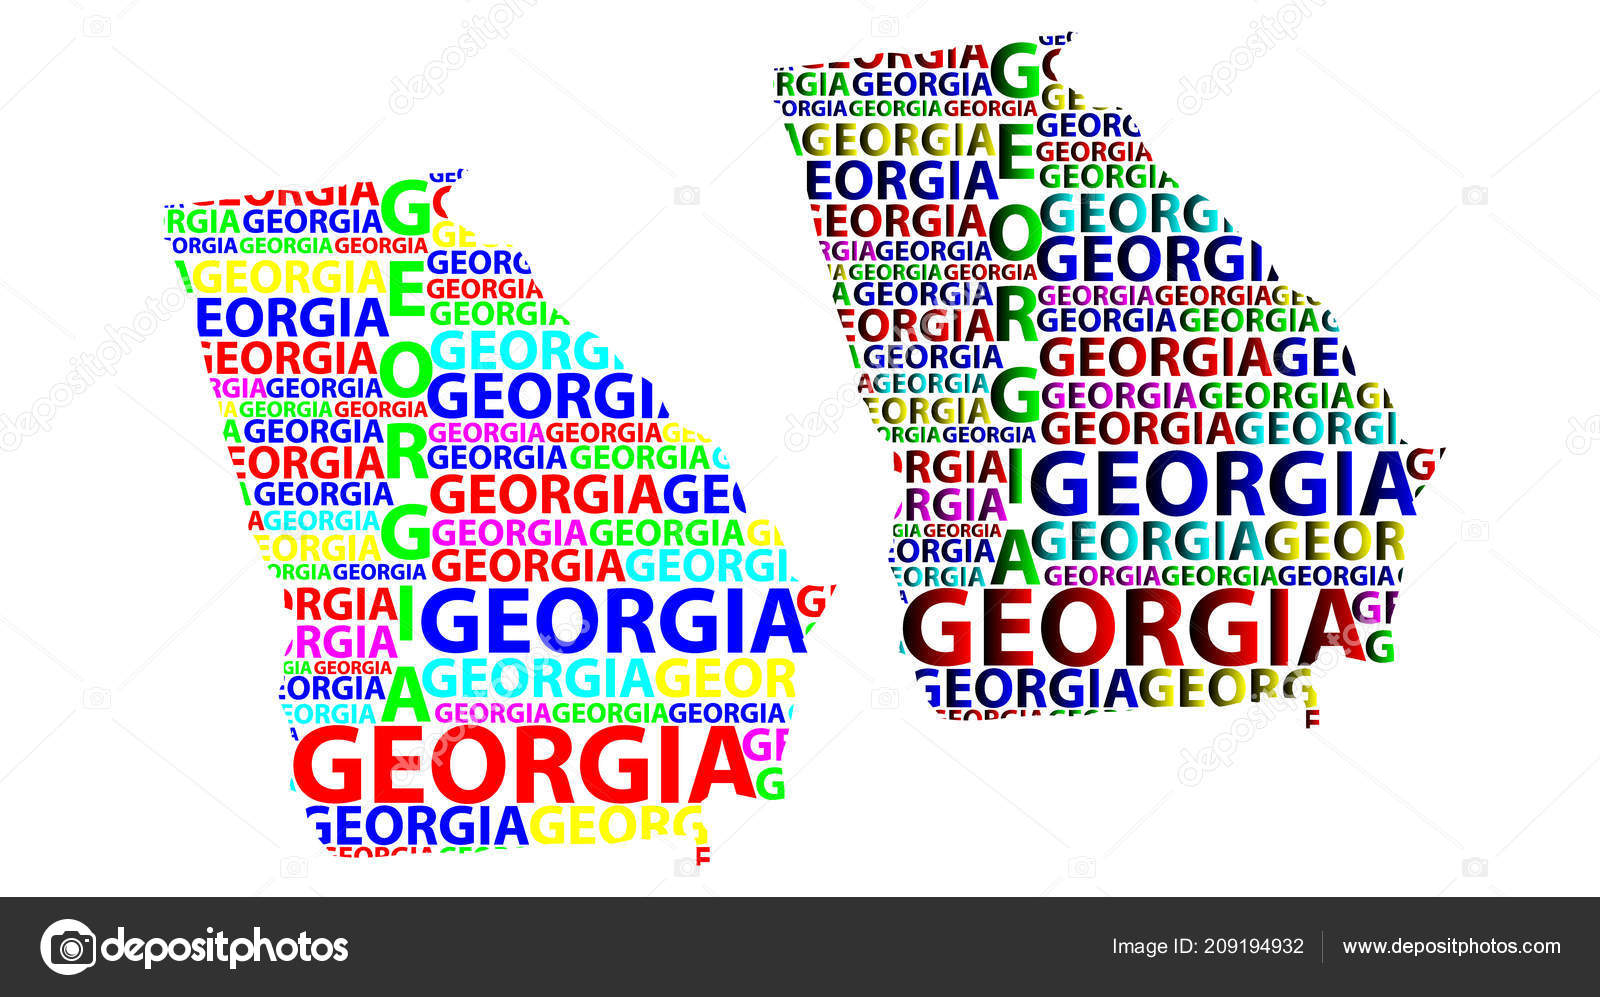 United State Of America Map.Sketch Georgia United States America Letter Text Map Georgia Map